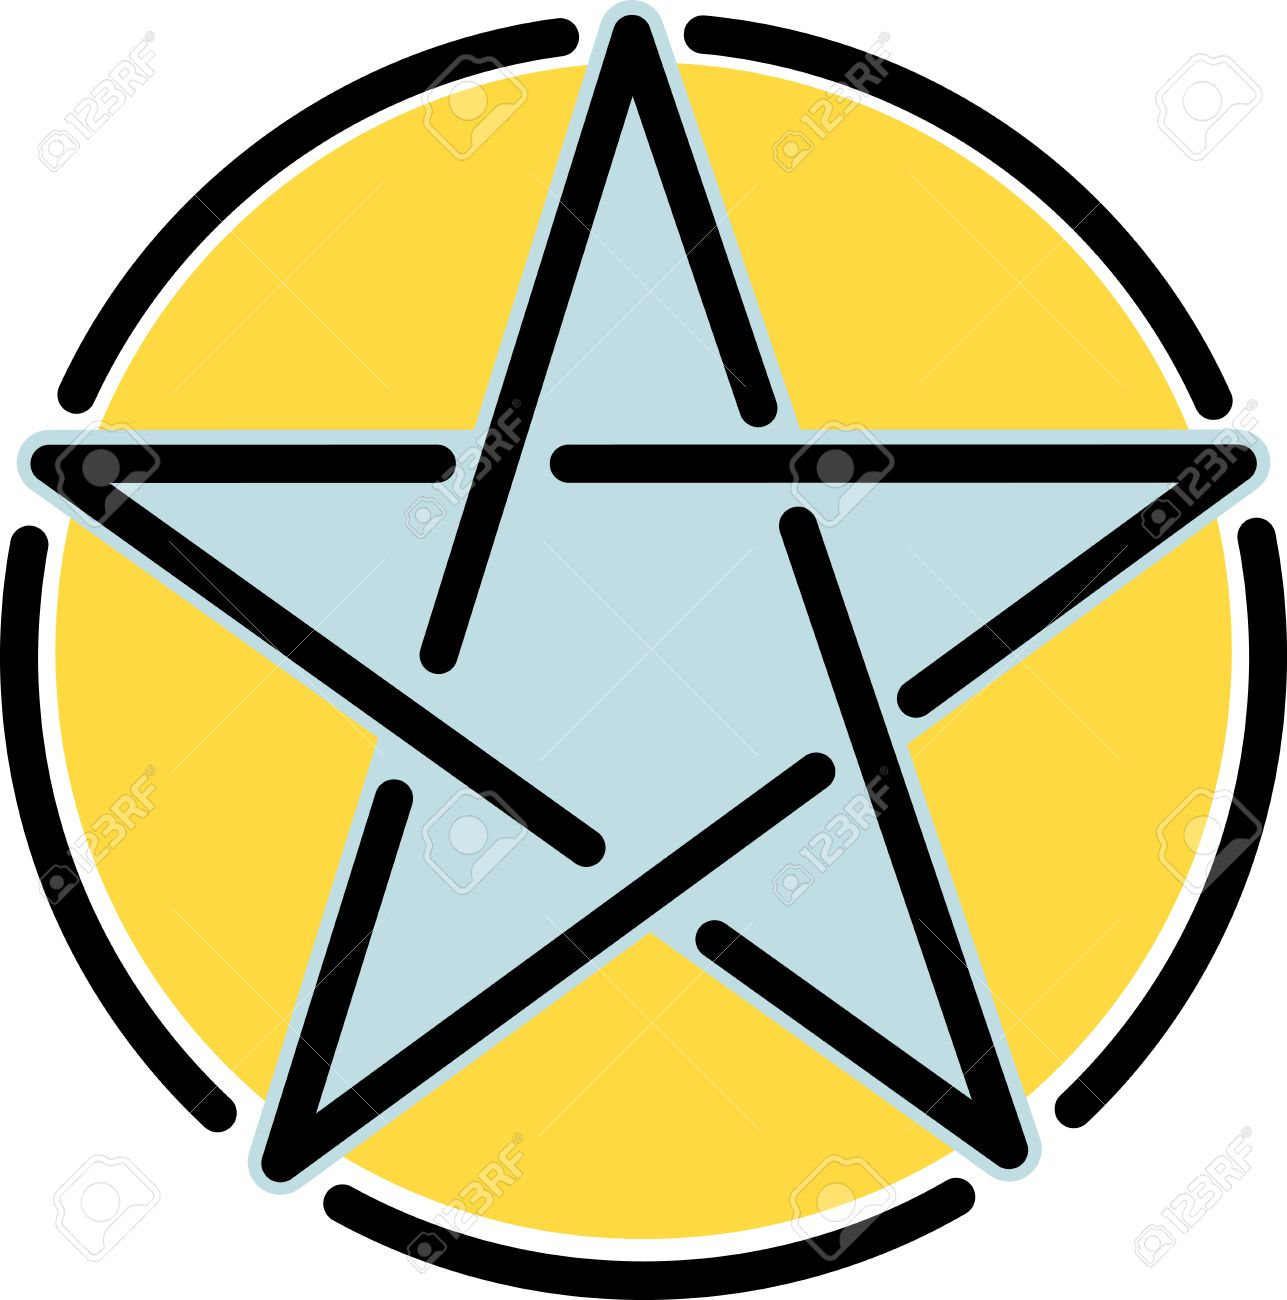 Wiccan Clipart | Free download best Wiccan Clipart on ClipArtMag.com